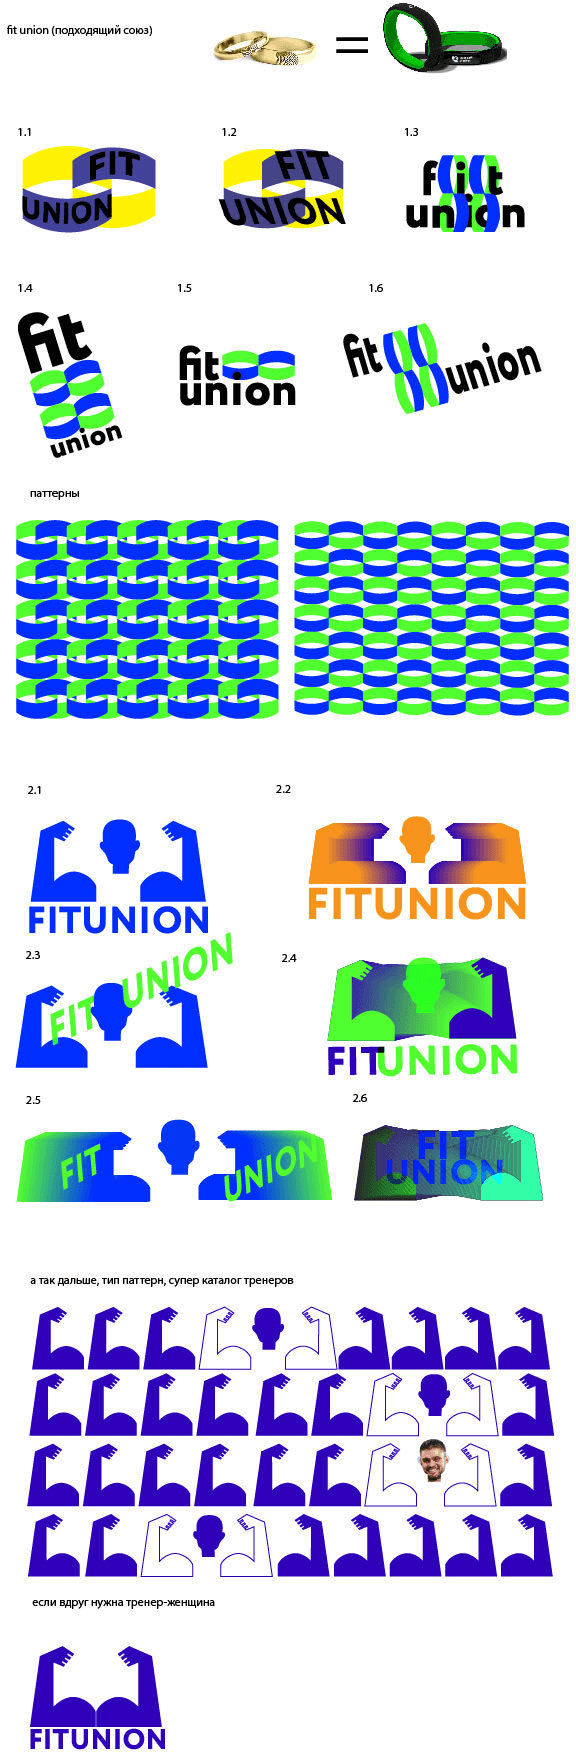 fitunion process 01